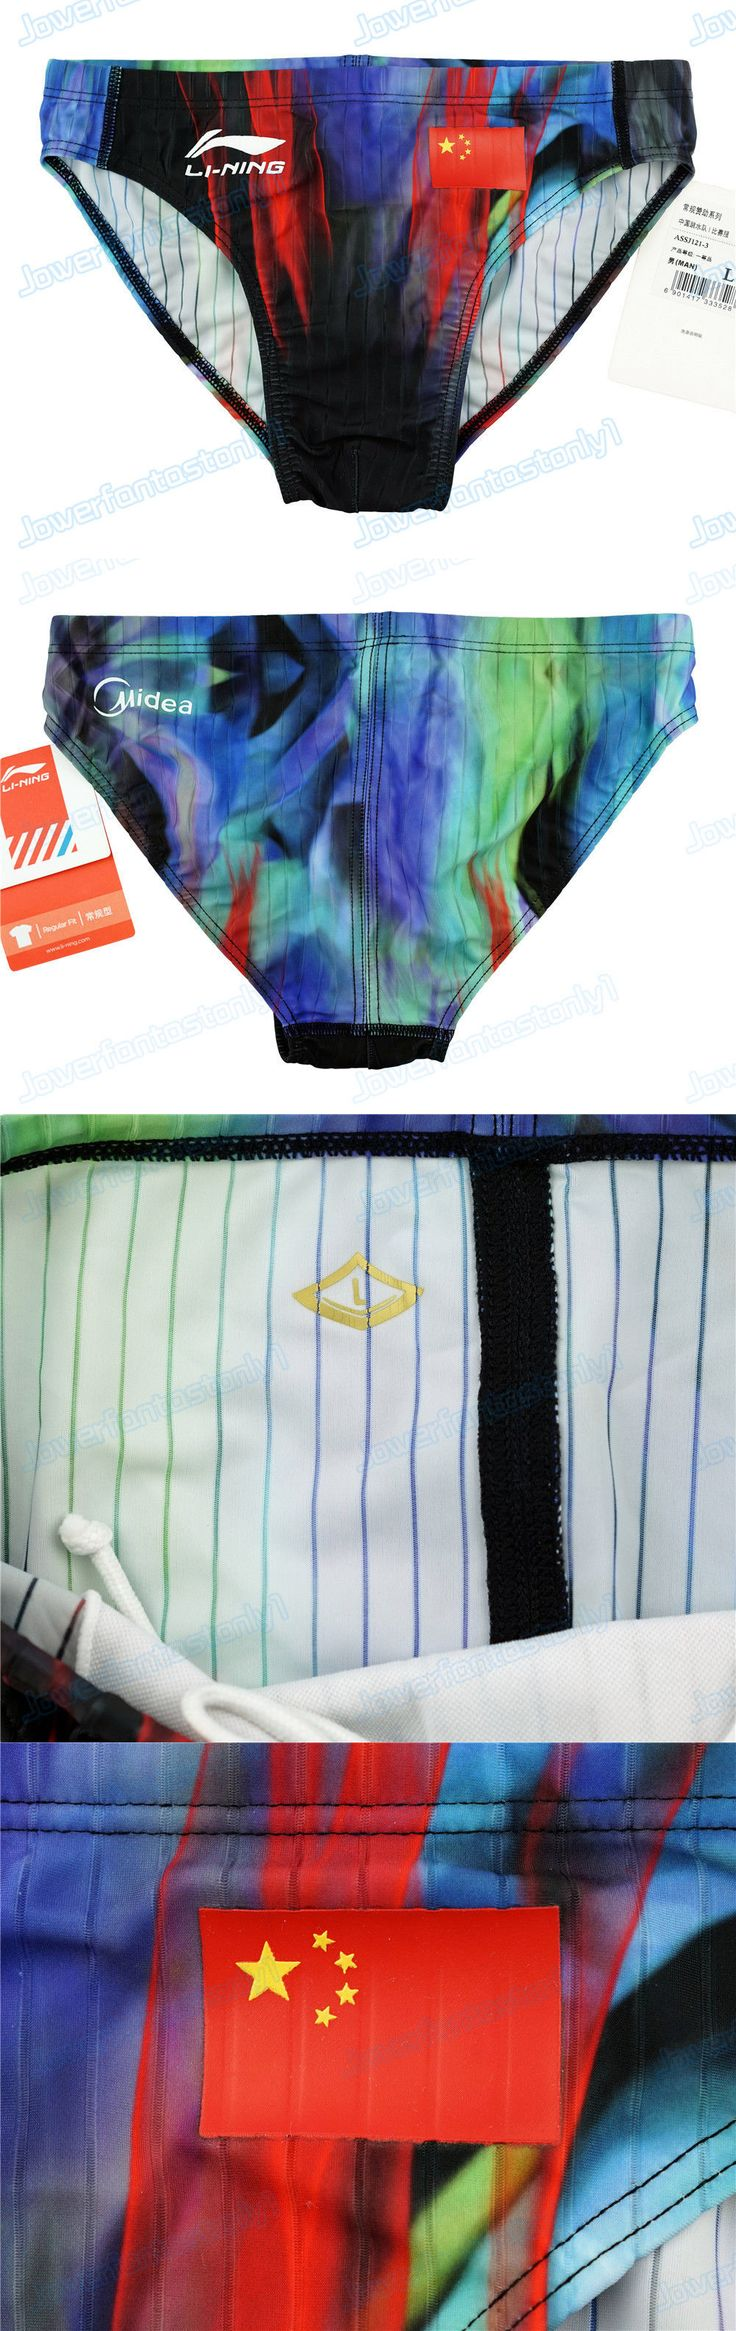 Swimwear 15690: * Brand New * Official Team Chinese Olympic Lining Diving Swimming Trunks Size L -> BUY IT NOW ONLY: $120 on eBay!